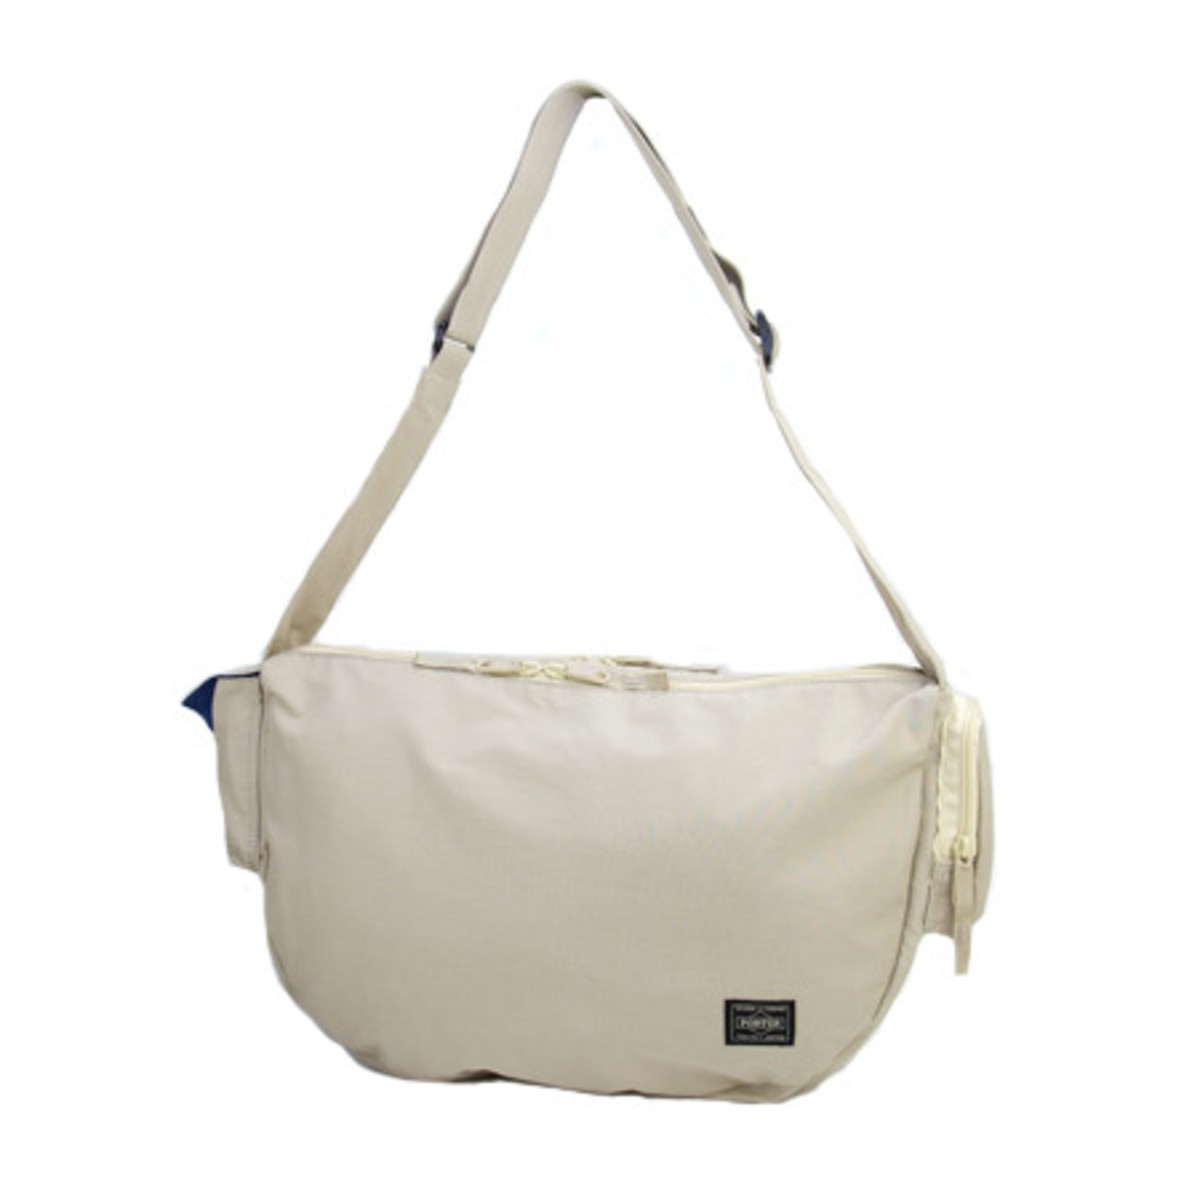 w-zip-shoulder-bag-beige